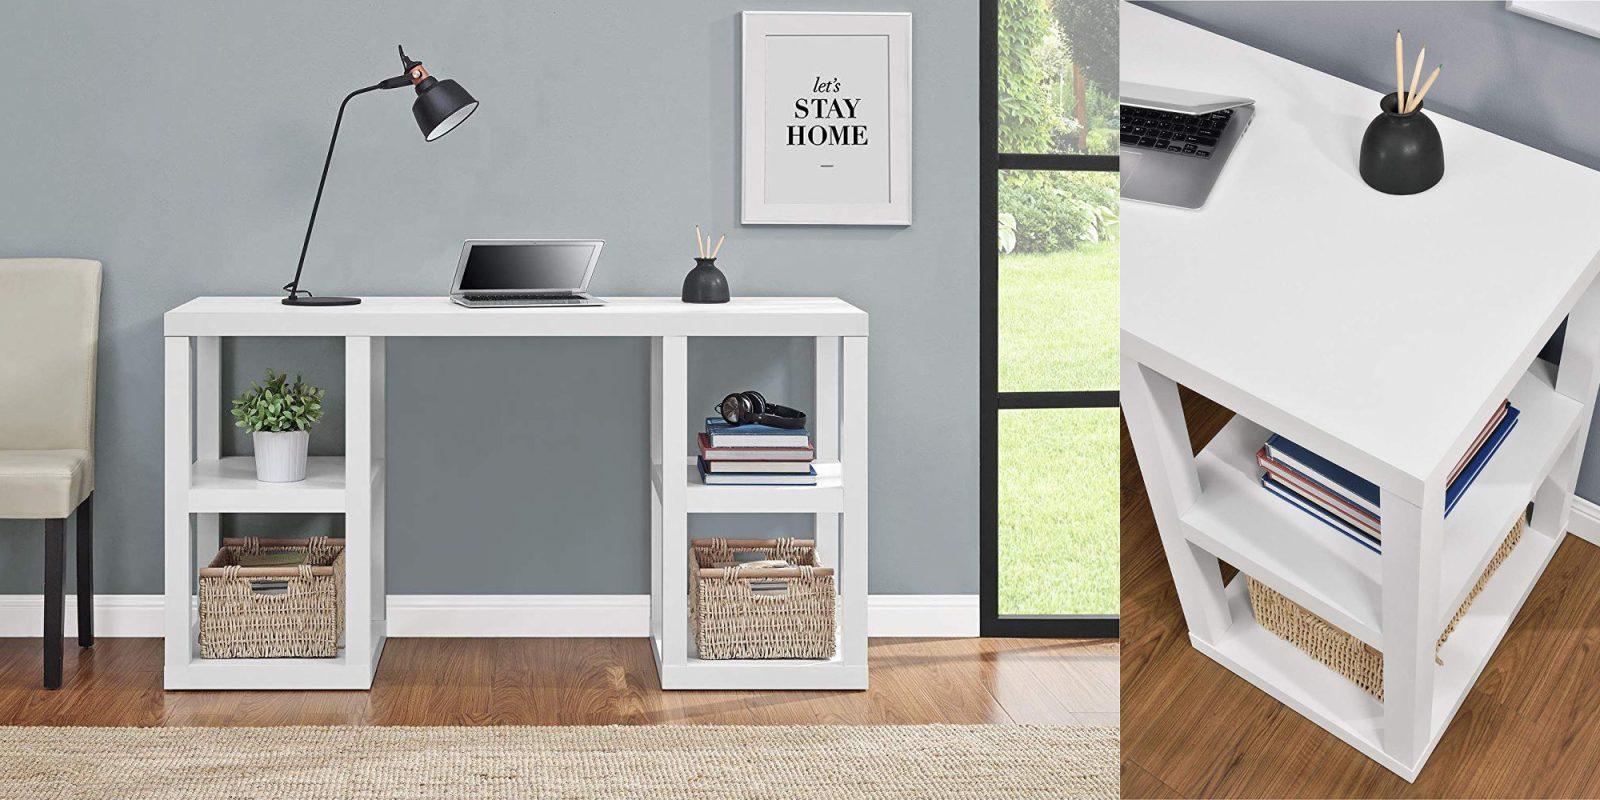 Grab the Ameriwood Deluxe Desk for Amazon's 2019 low of $103 shipped (Reg. $120)